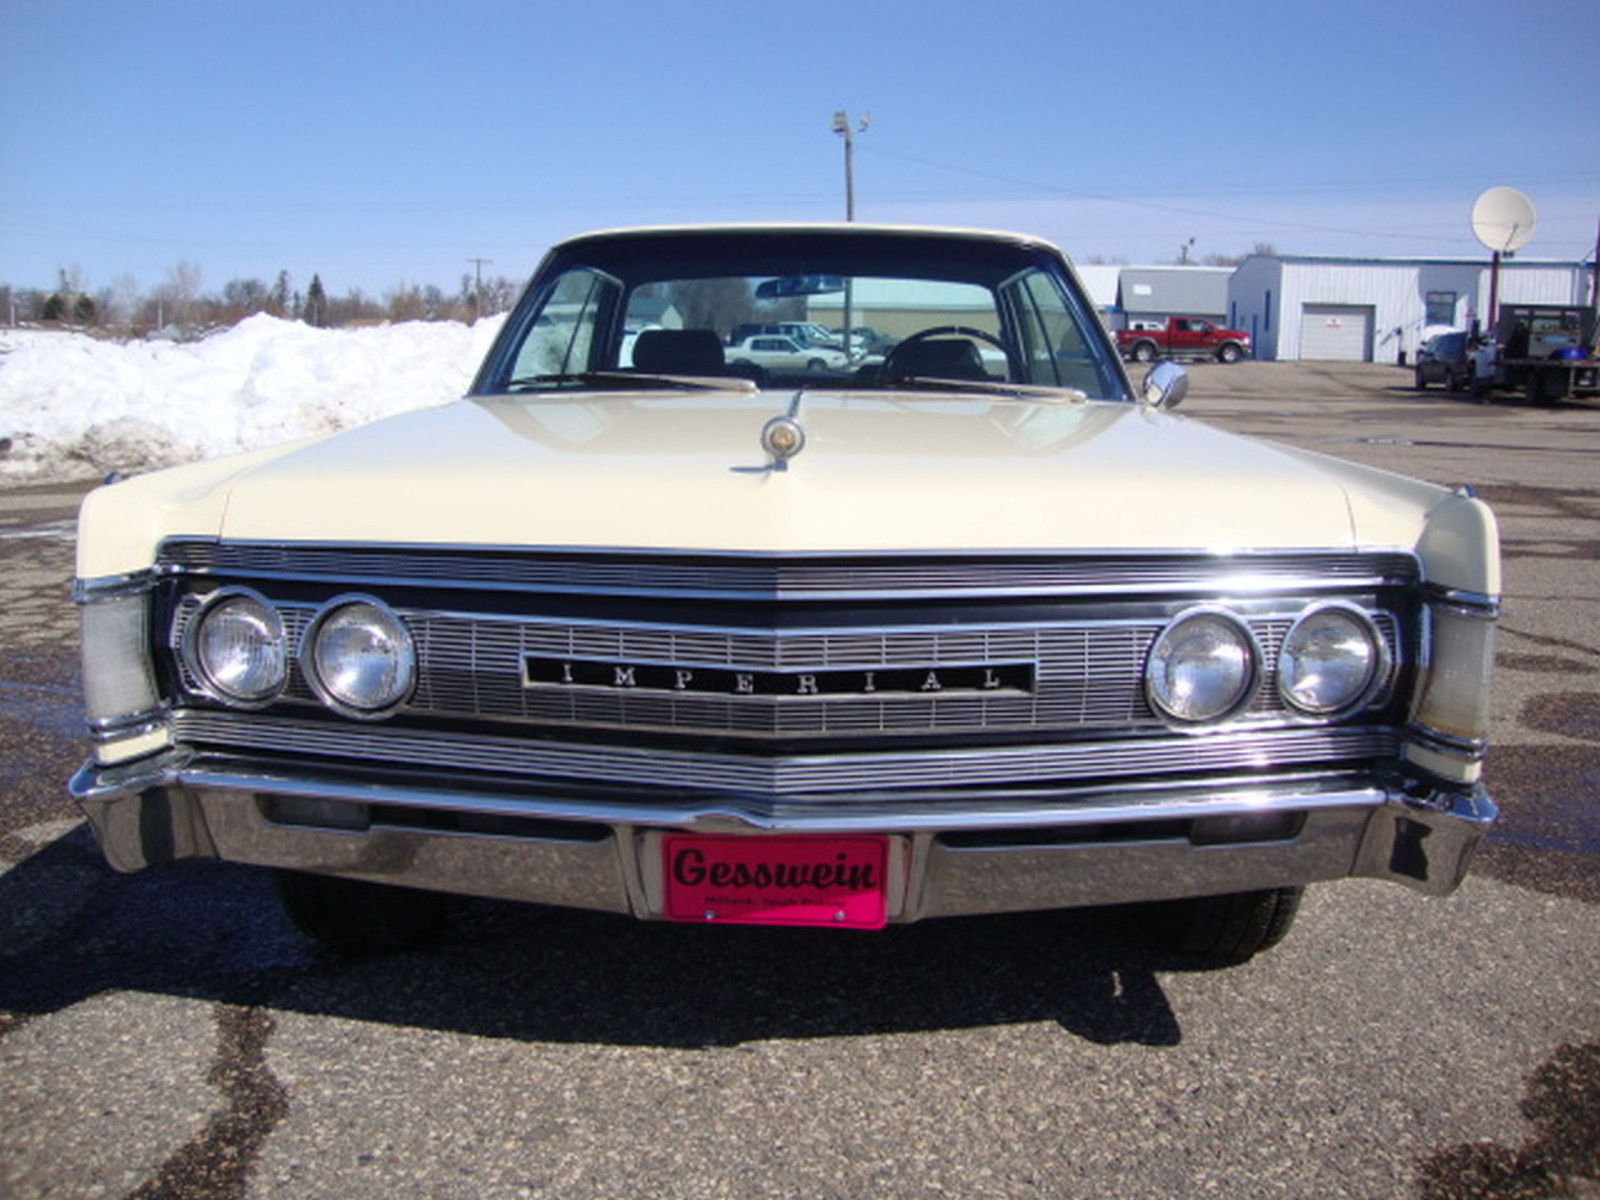 1967 Chrysler Imperial Crown Coupe - Image 2